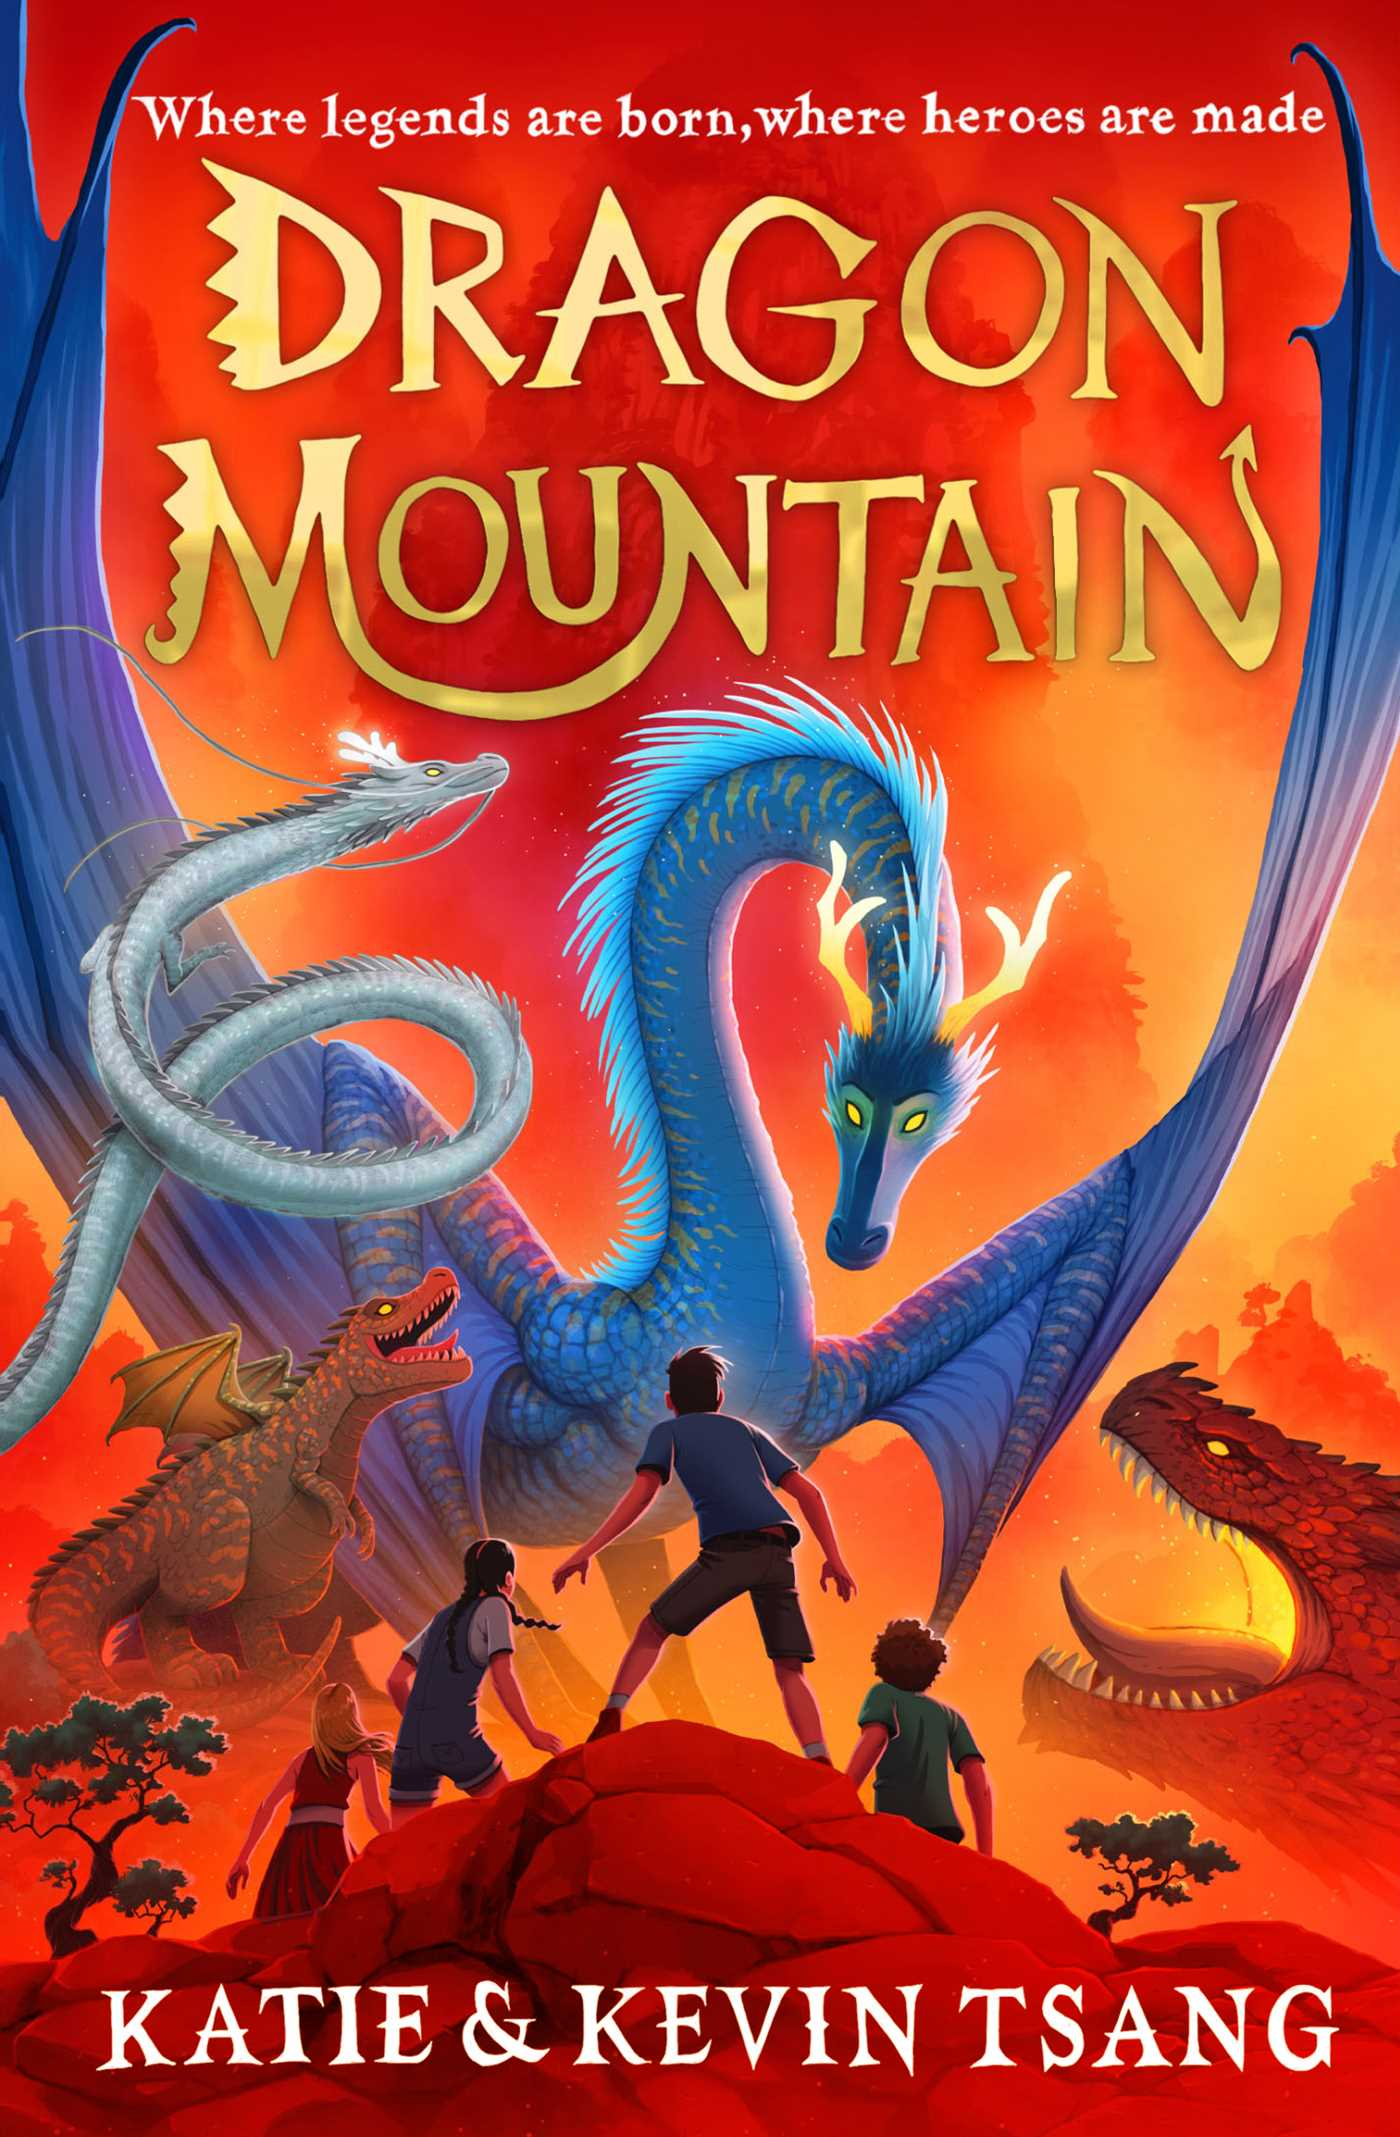 Dragon Mountain | Book by Katie Tsang, Kevin Tsang | Official Publisher  Page | Simon & Schuster UK